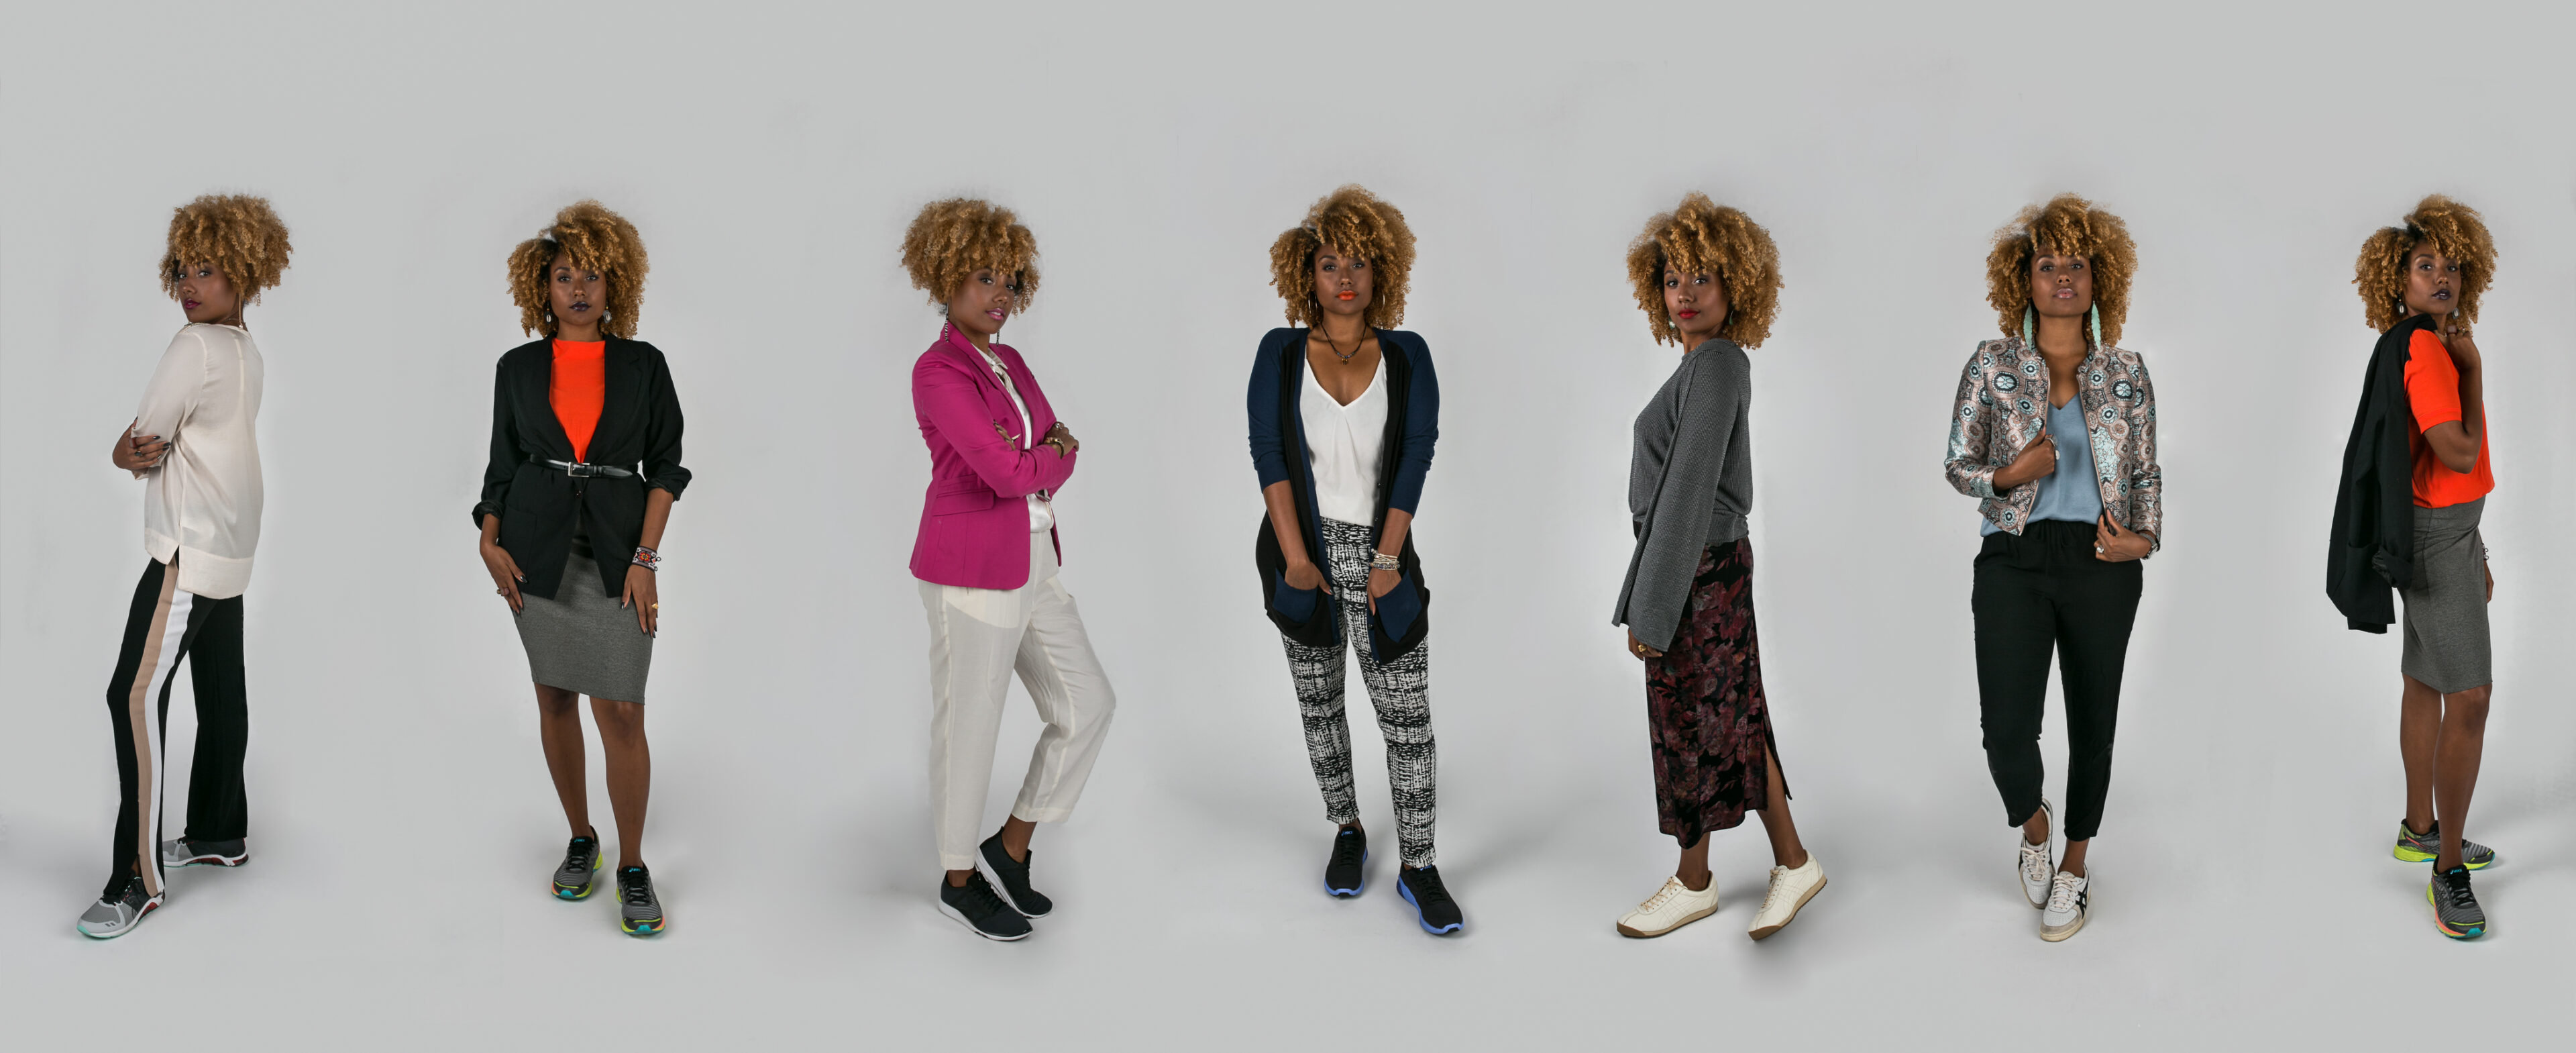 RSEE - LCM - Liveclothesminded - xmmtt - long beach - wearwhoyouare- what to wear to work